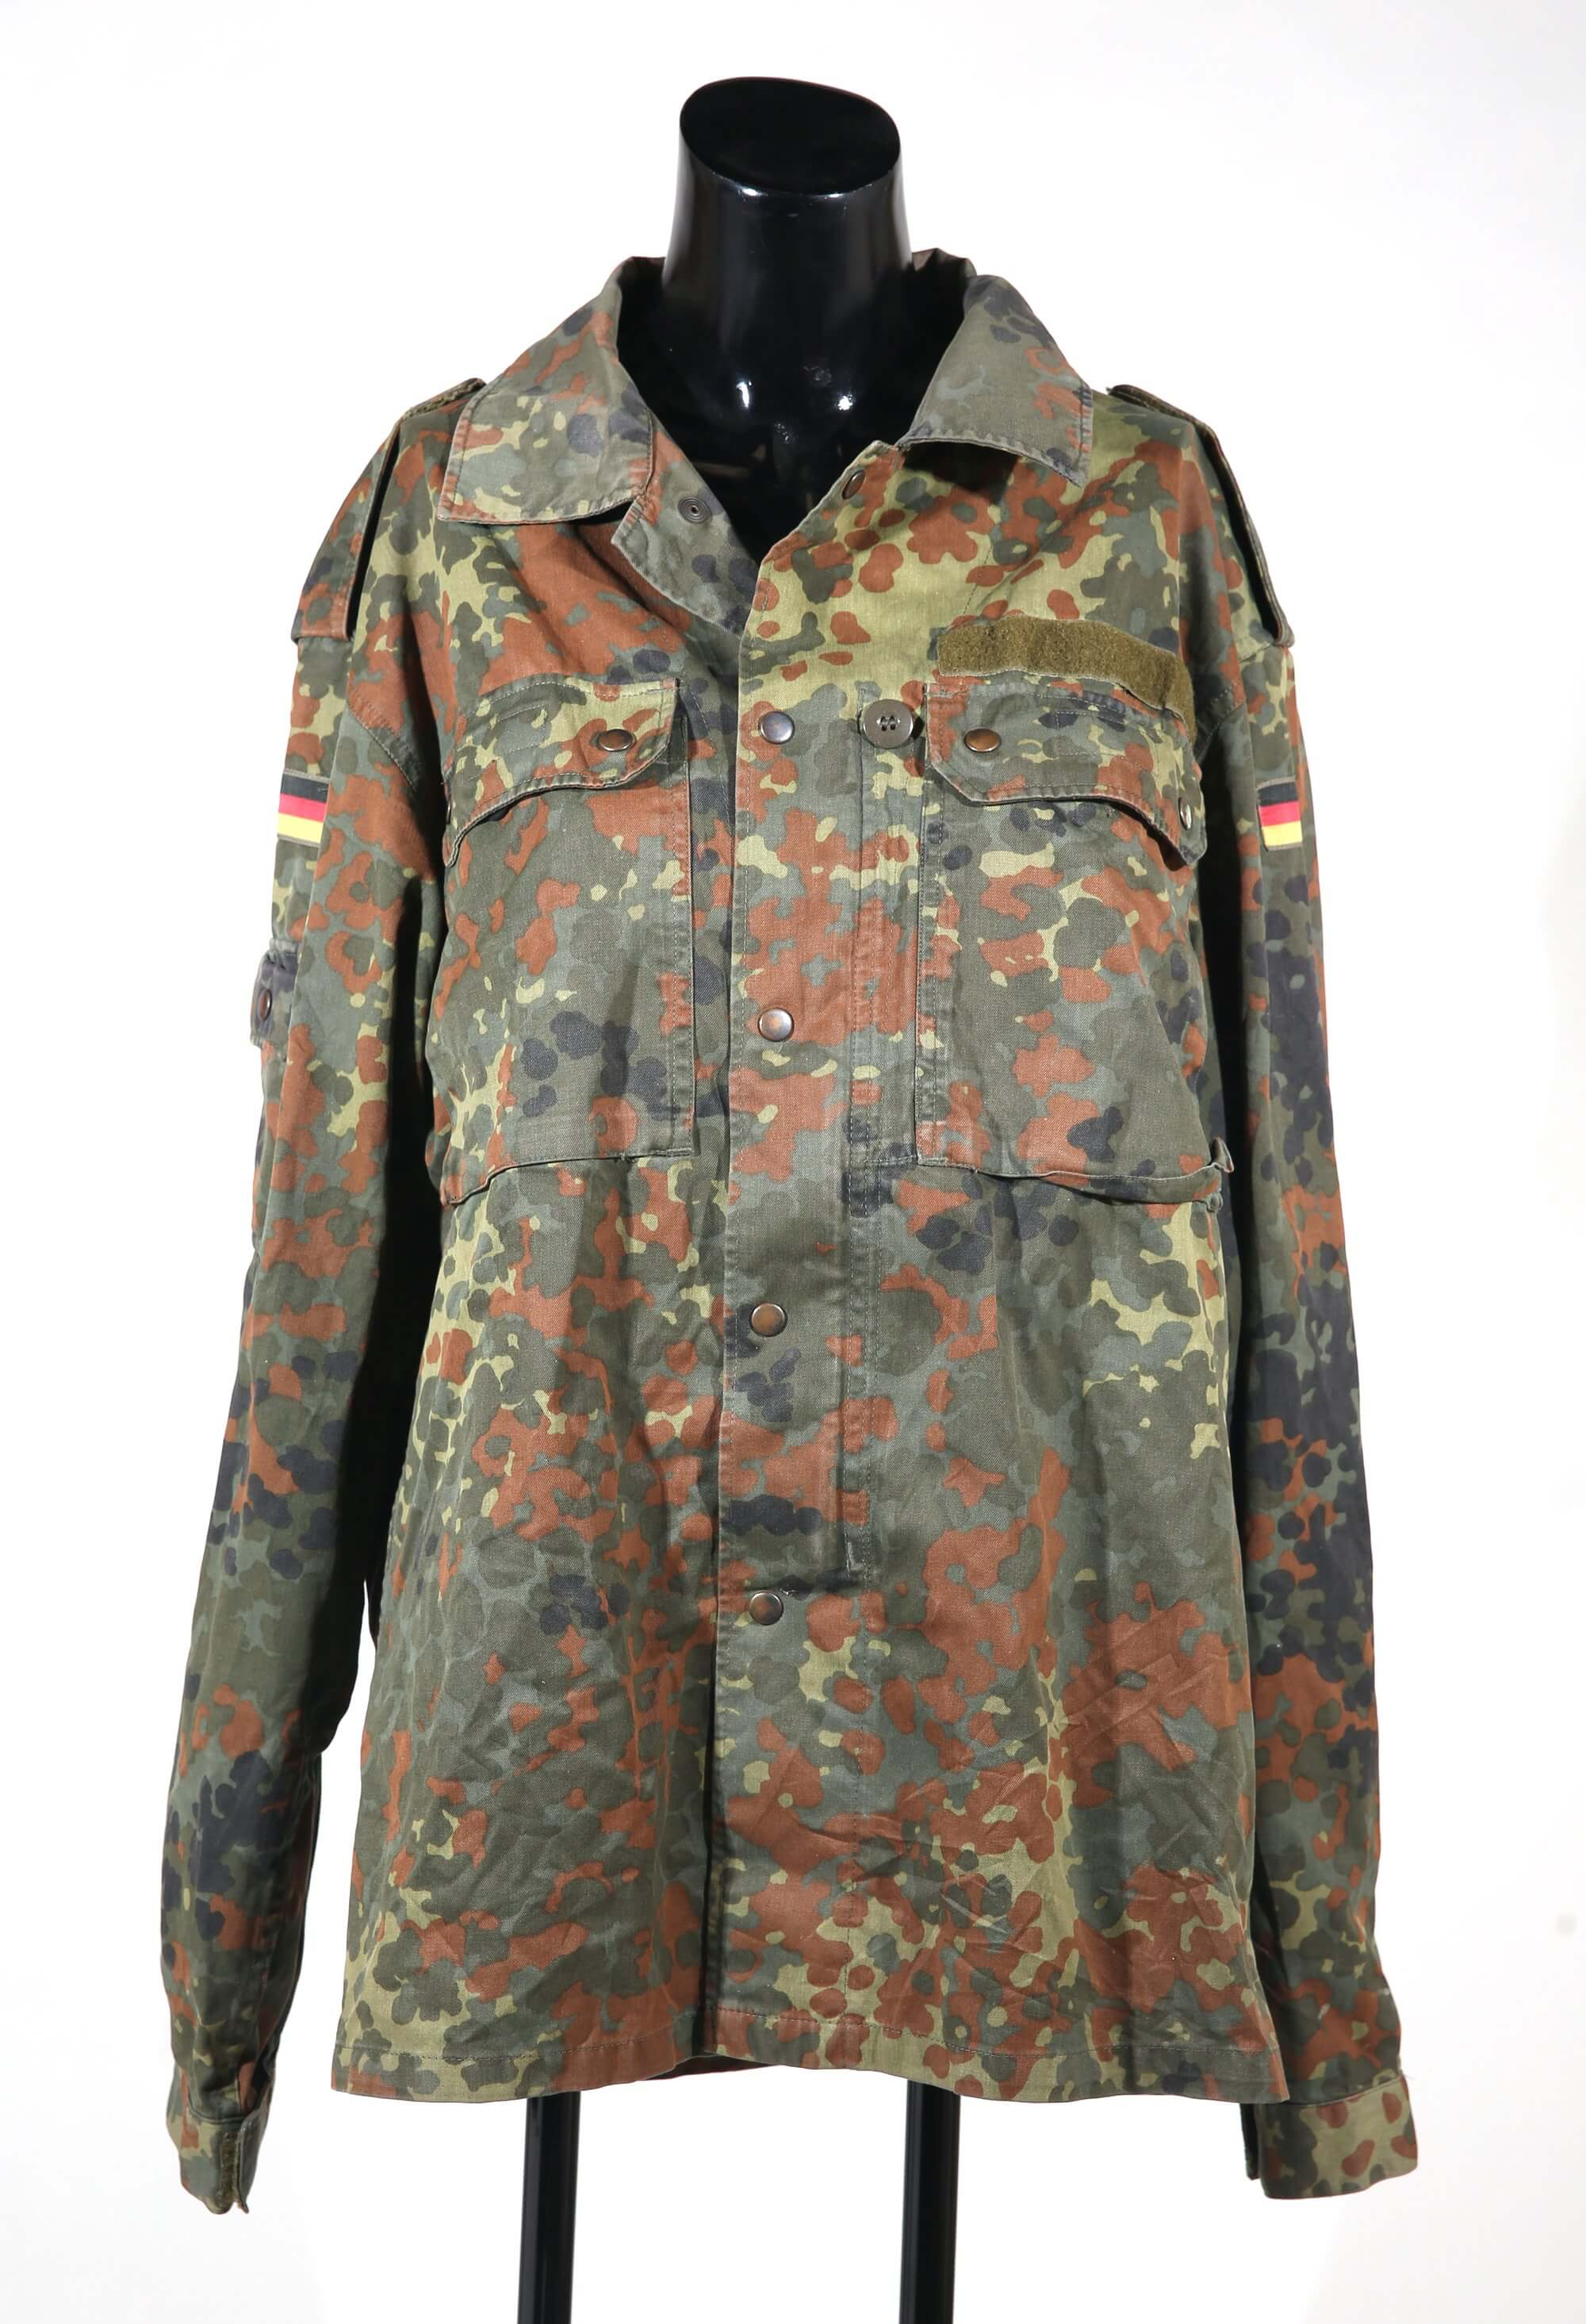 Image of German military jacket